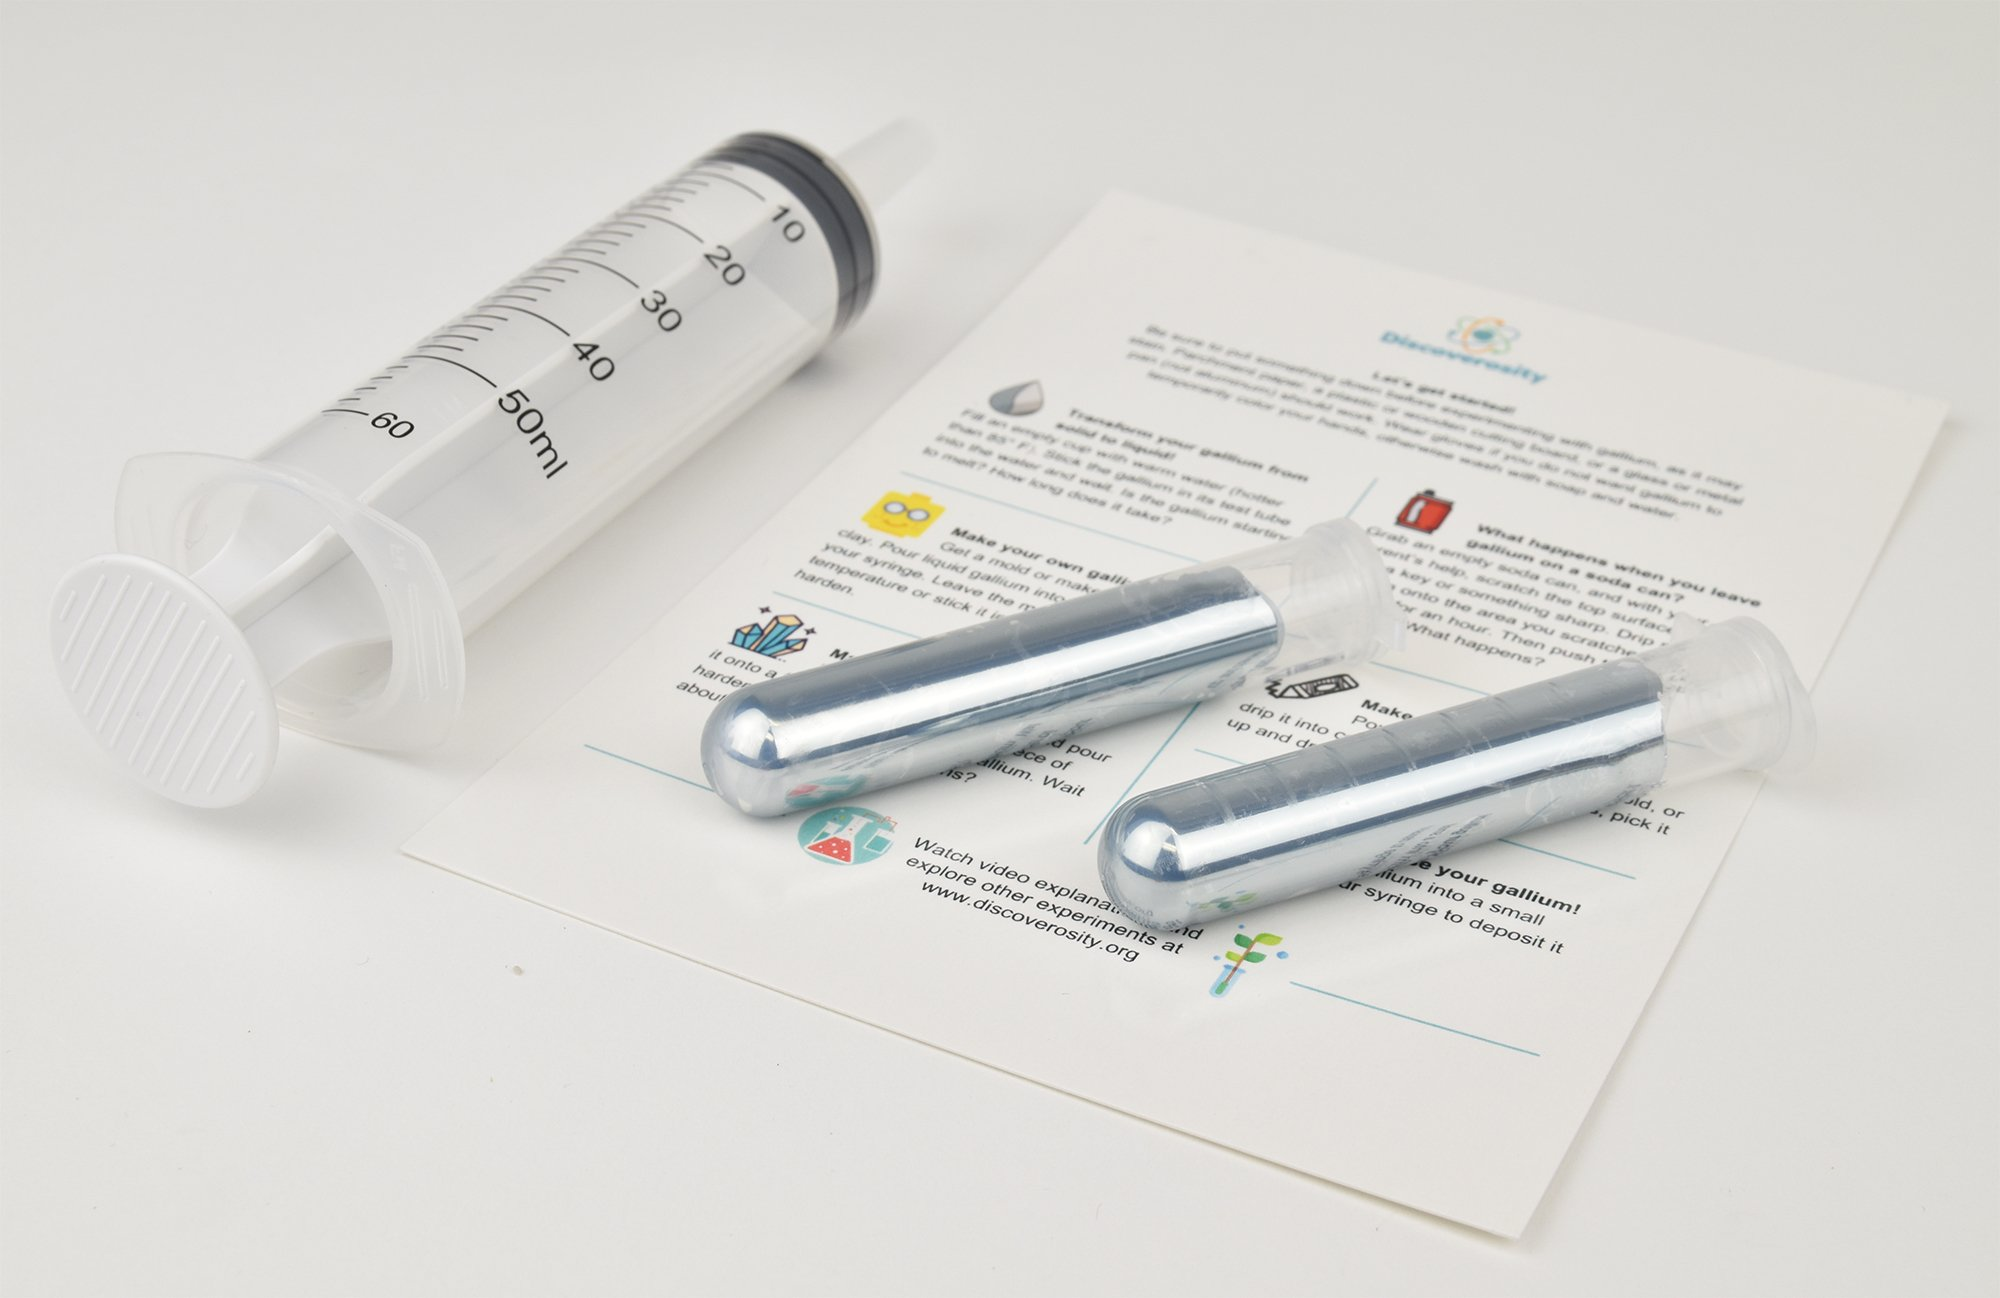 Gallium Melting Metal Gift - 100 Grams 99.99% Pure! Pack of Two 50 Gram Vials - Melts at 85.58°F - Fun, Safe and Perfect for Science Projects! + Free Plastic Syringe and Experiment Guide Included